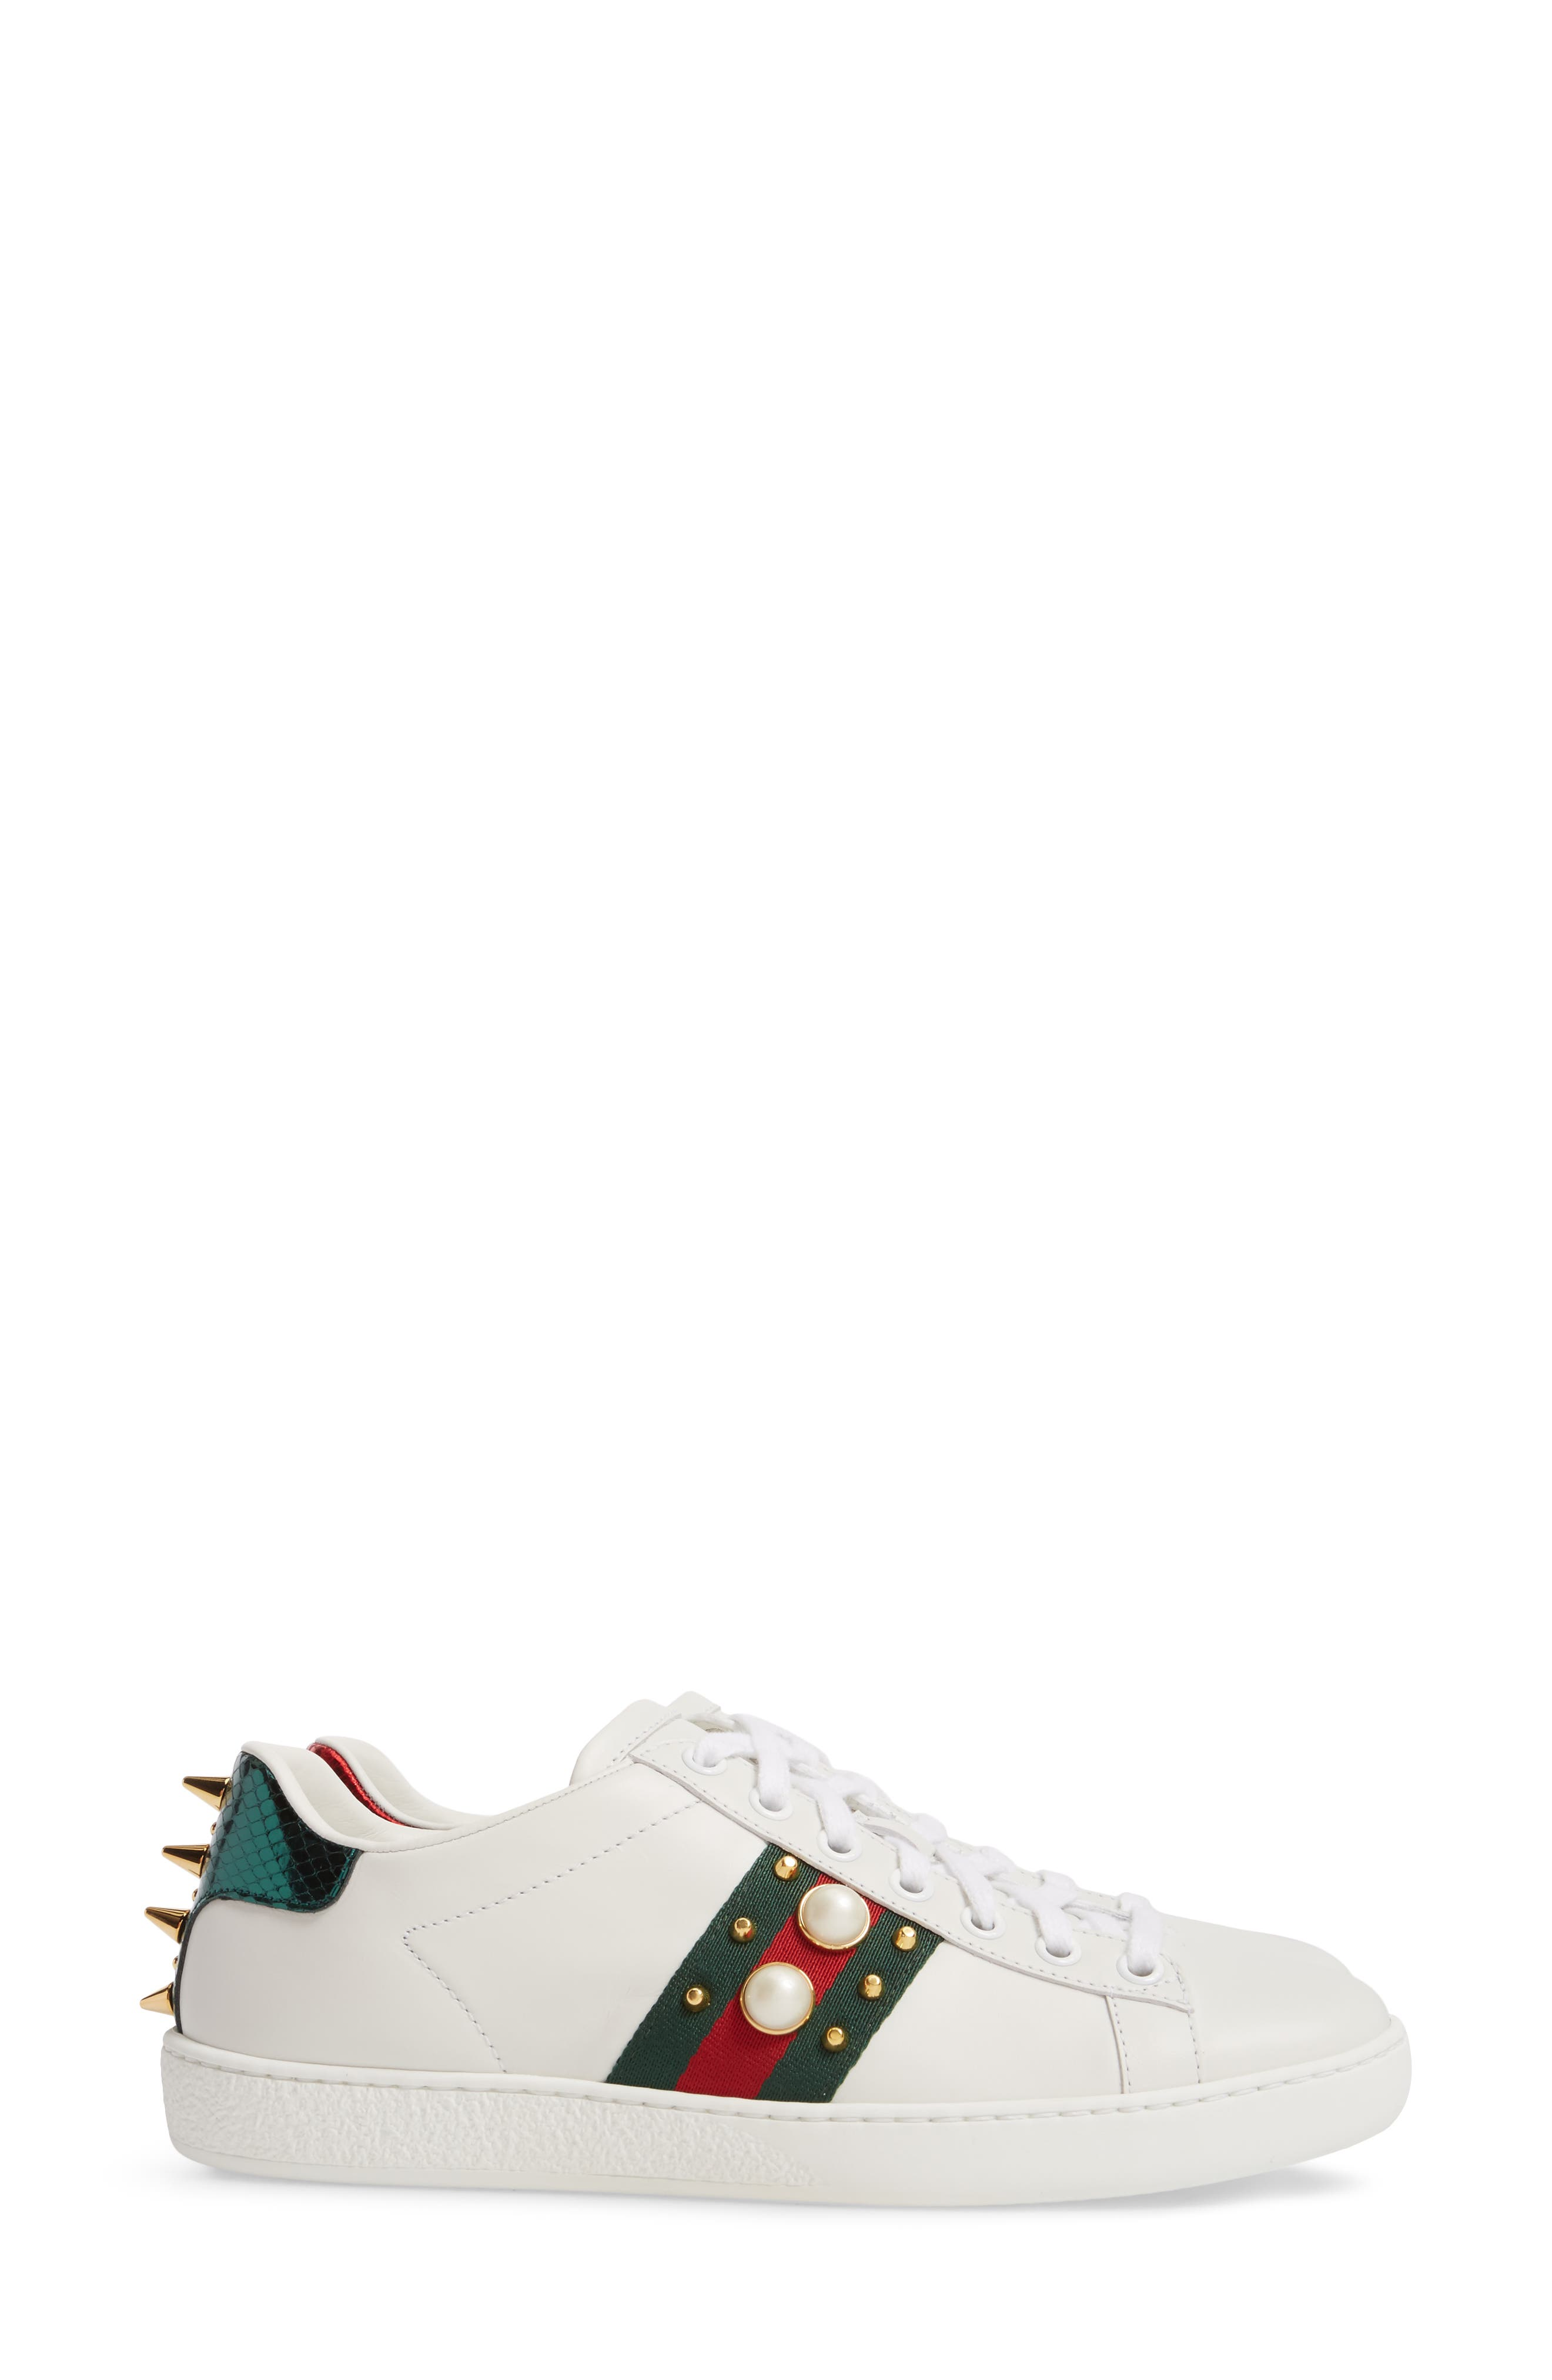 'New Ace' Low Top Sneaker,                             Alternate thumbnail 15, color,